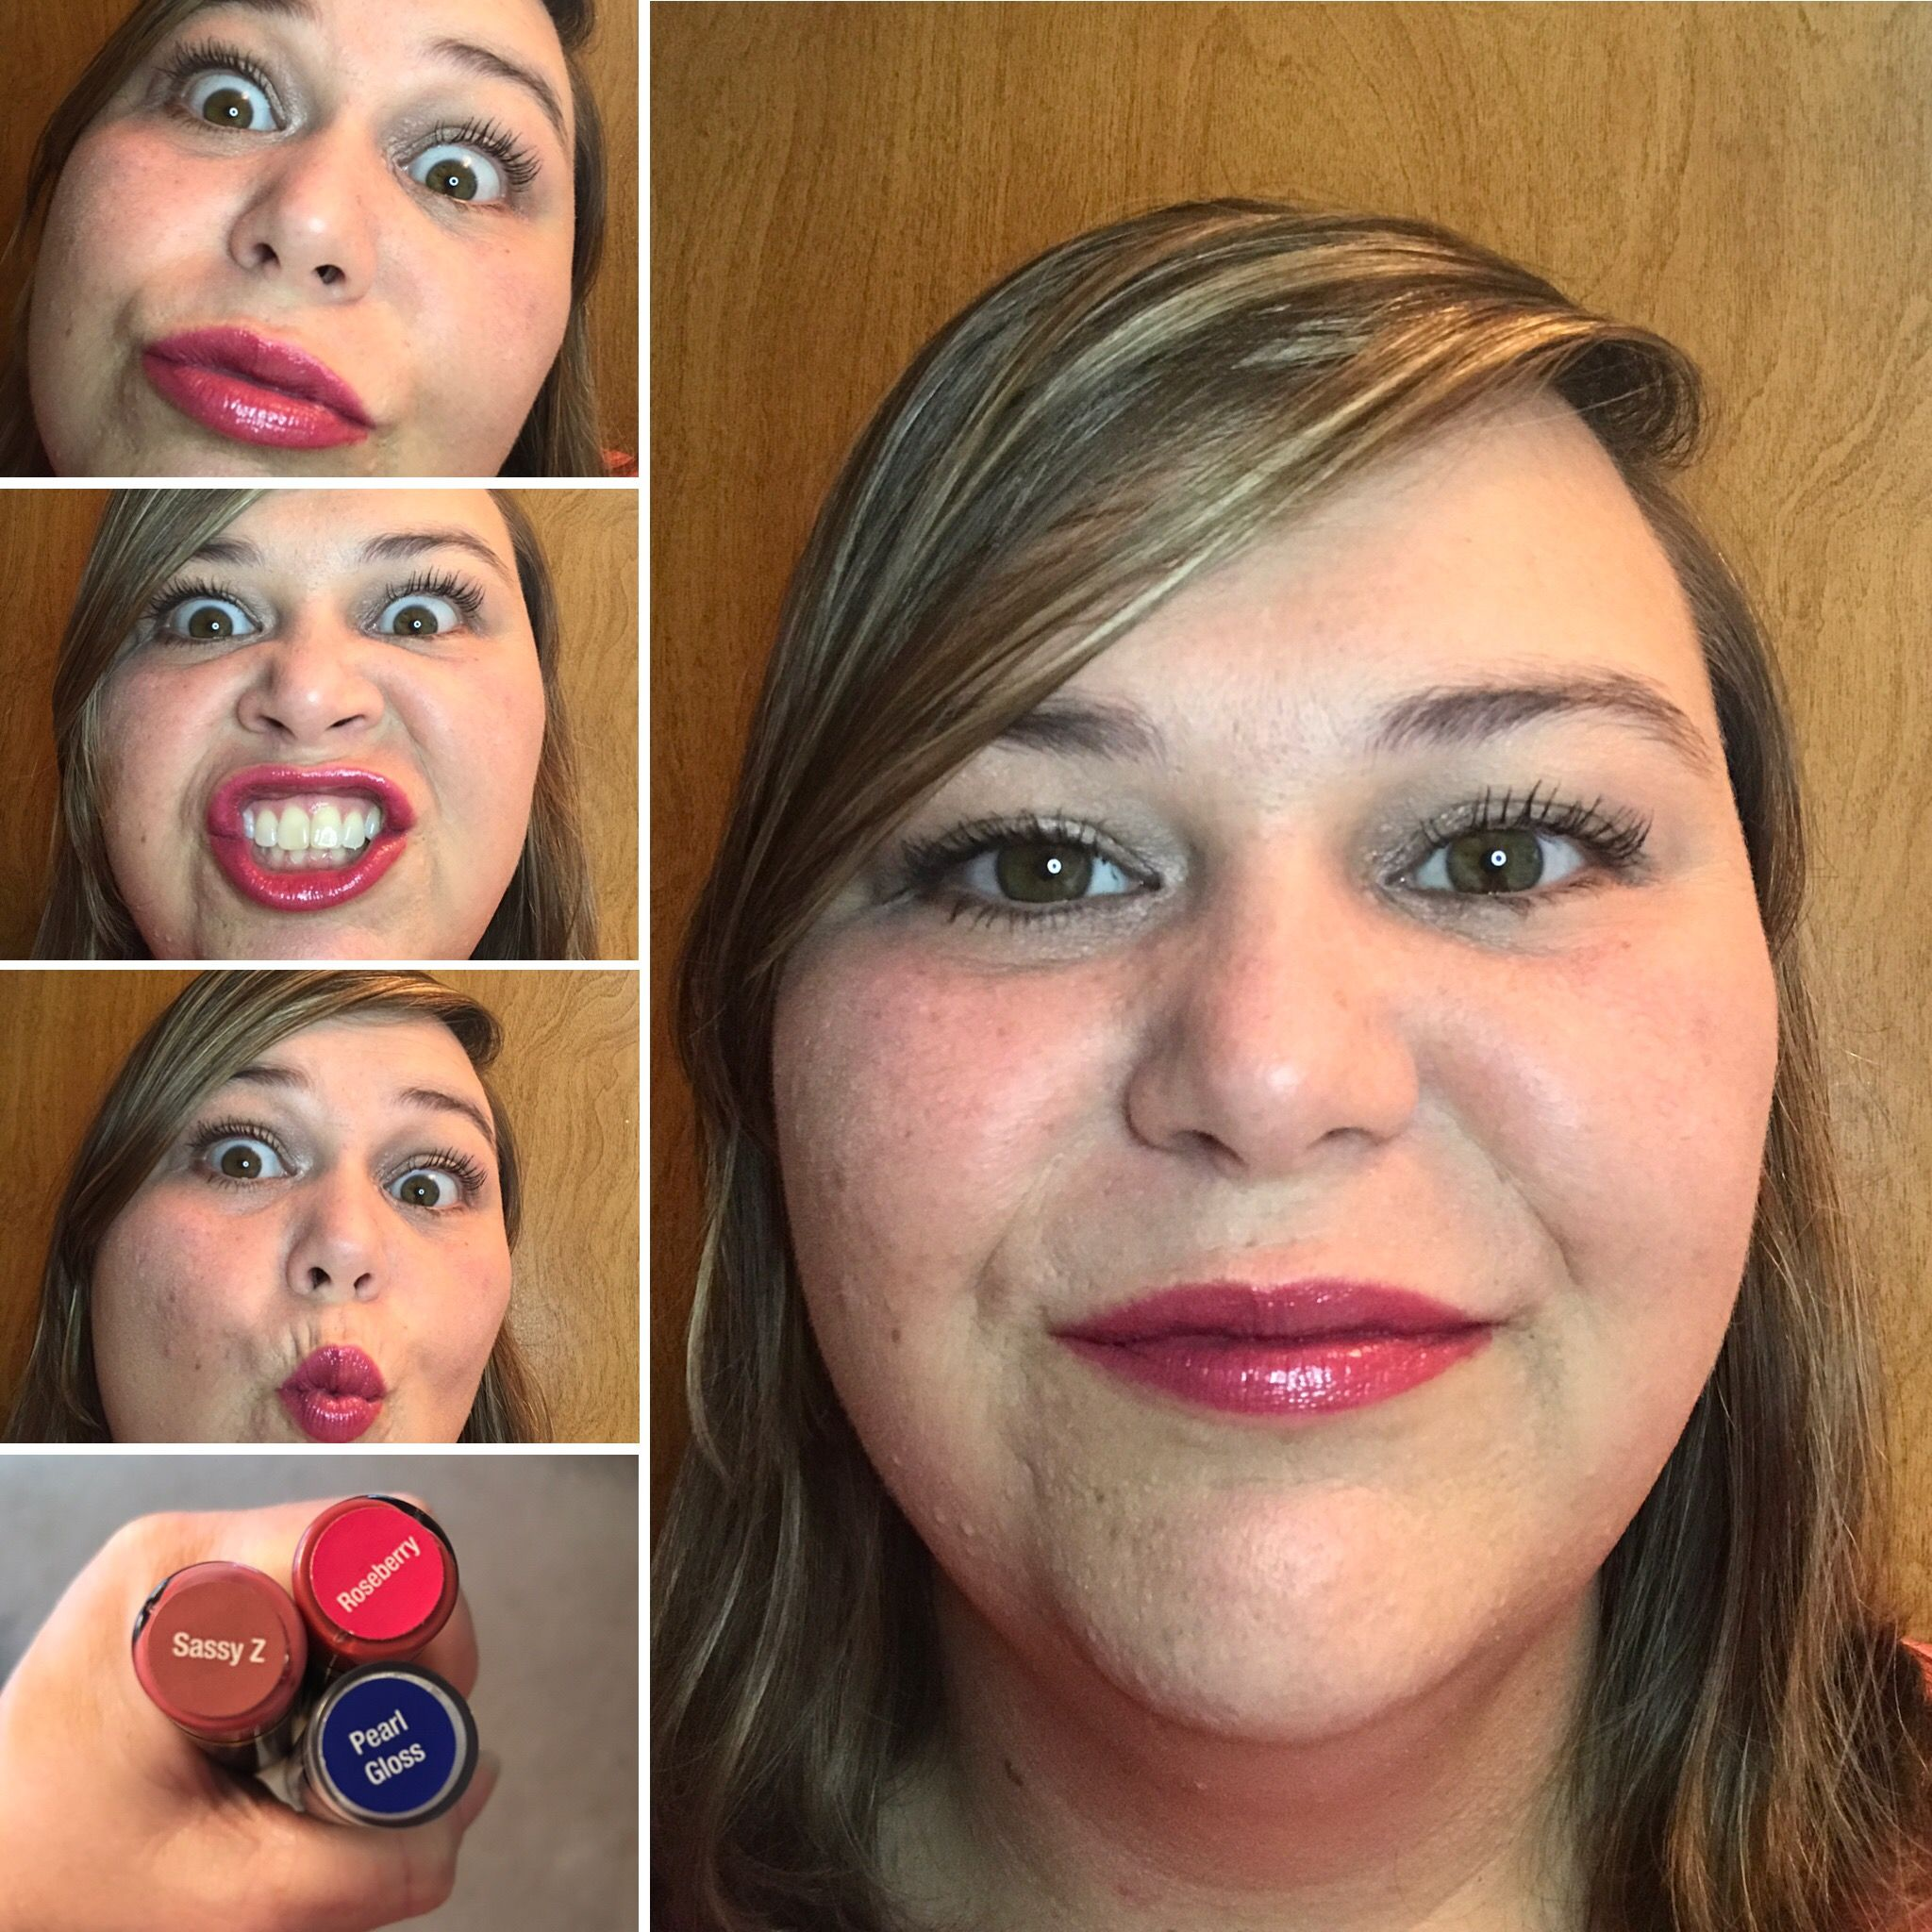 Sassy Z layered with Roseberry!! LipSense for the win!! Message me to